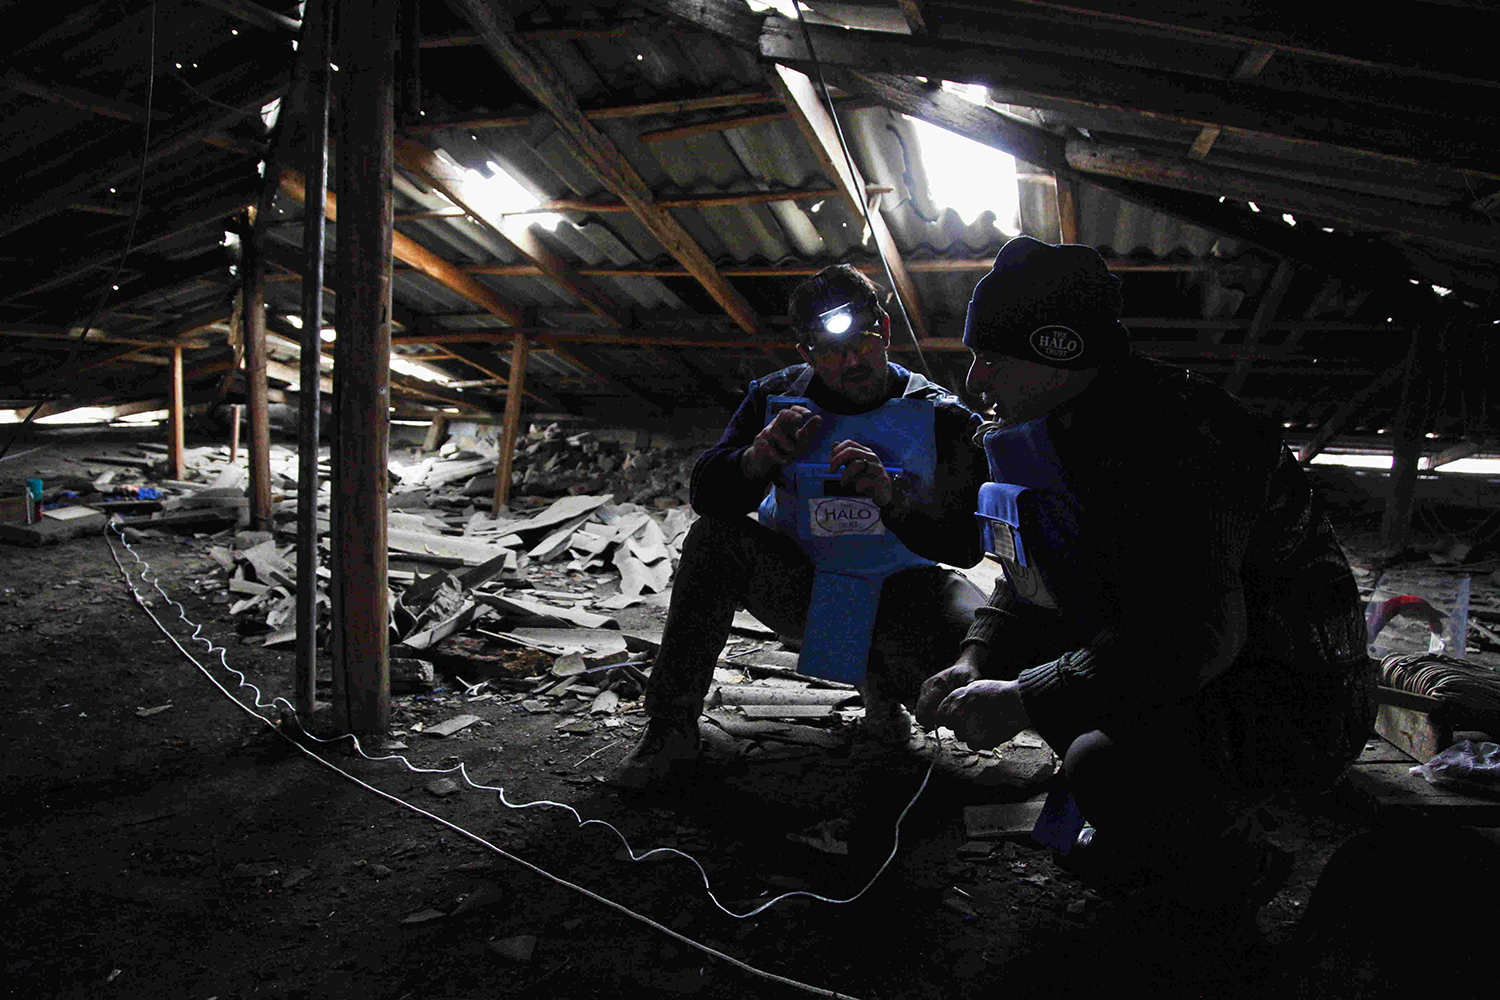 Two specialists from the HALO Trust humanitarian demining group prepare to remove an unexploded cluster bomb from the roof of an apartment block in Stepanakert, Nagorno-Karabakh, on Dec. 3, 2020.